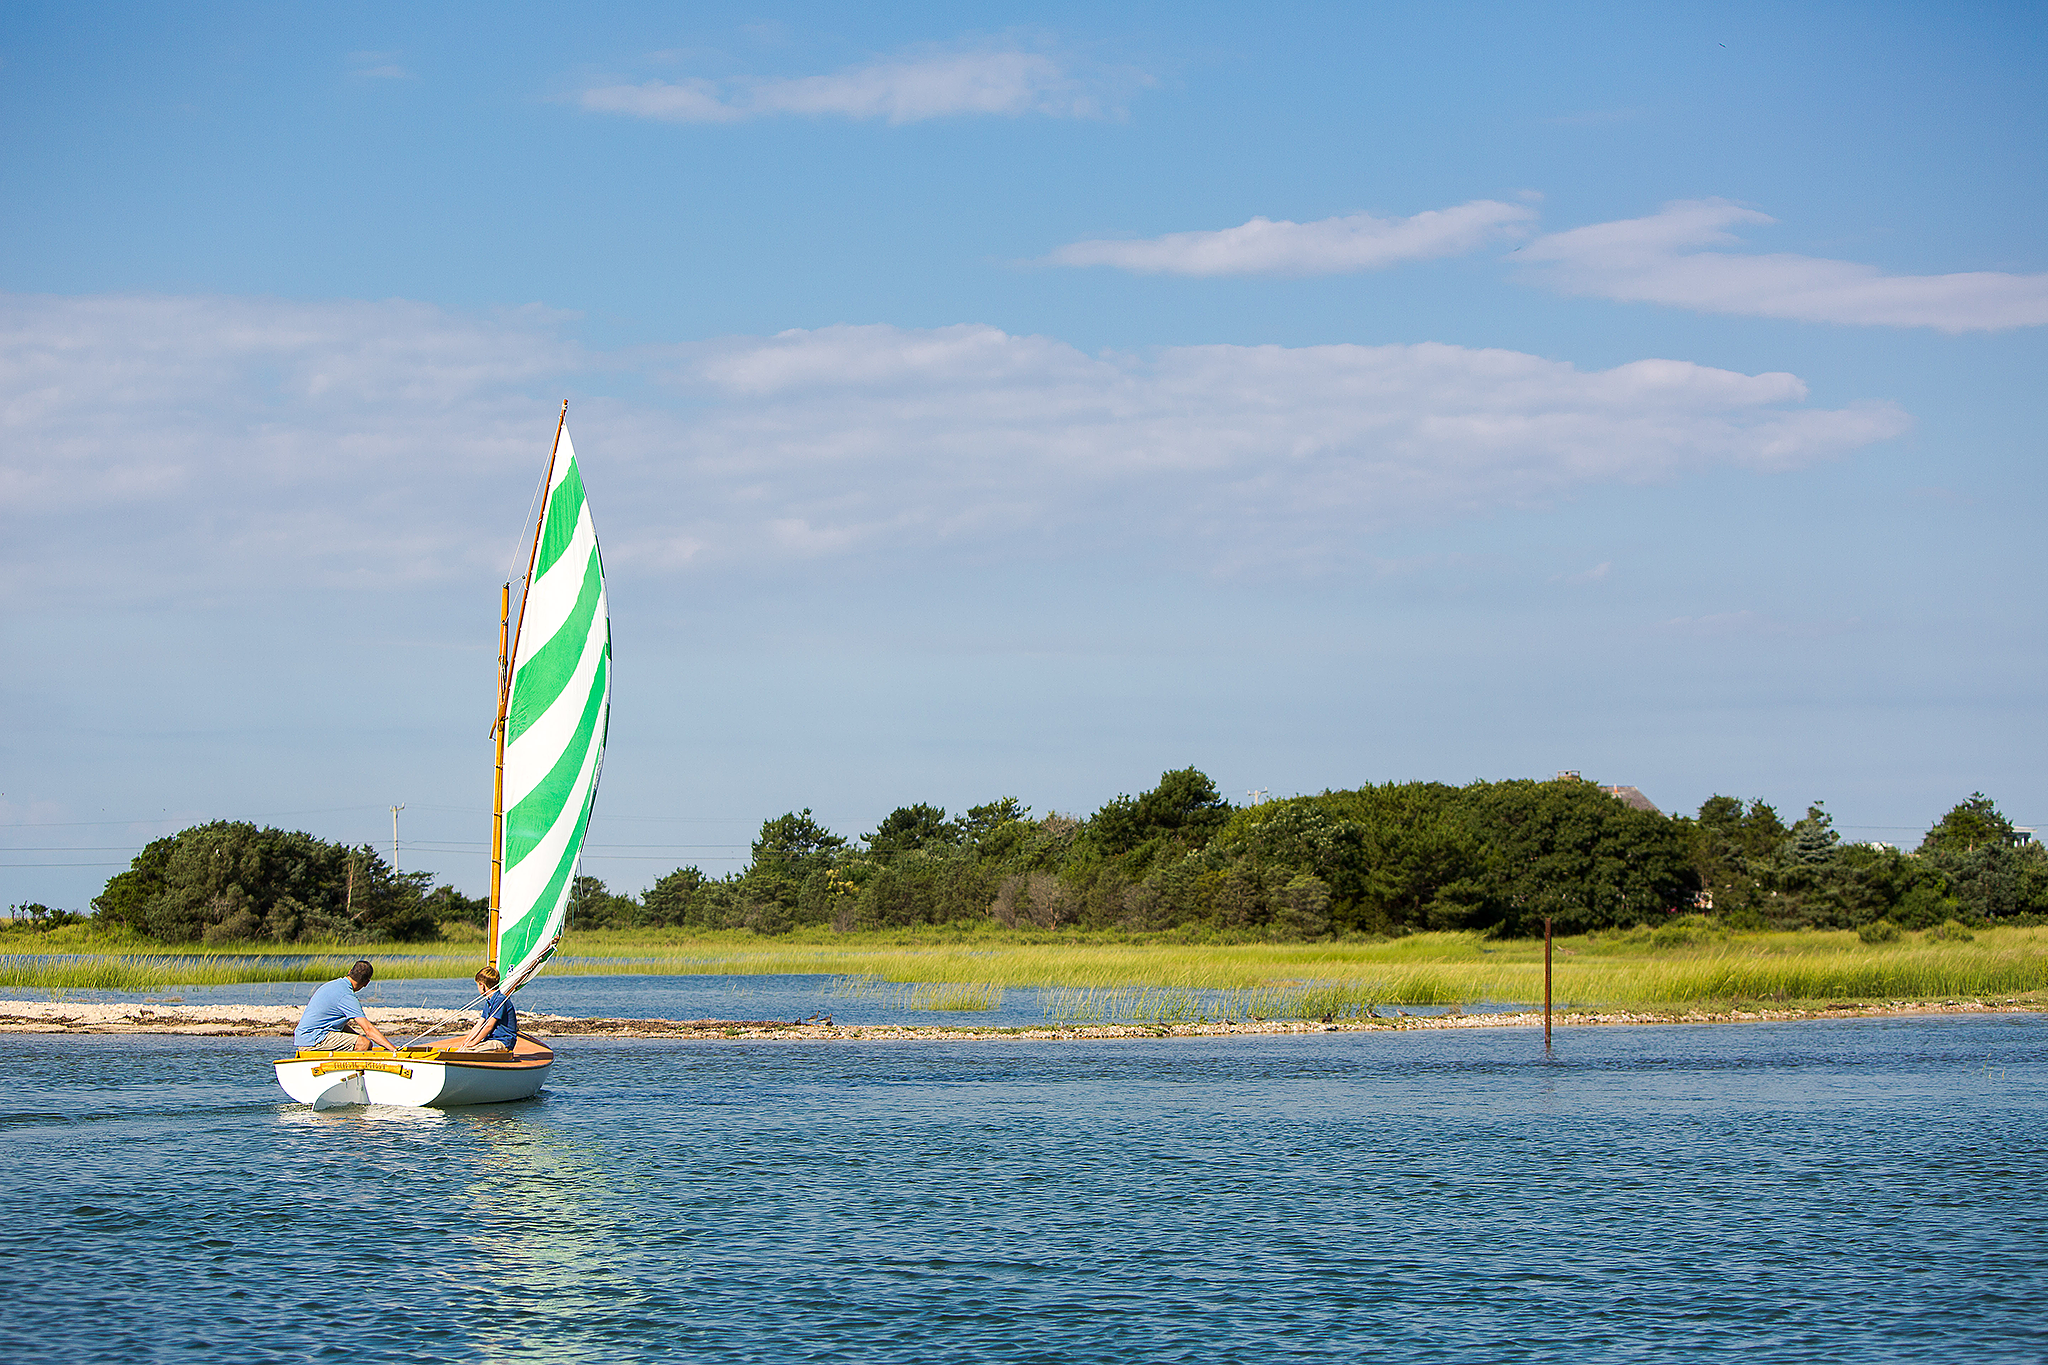 Father and son sailing in shallow water with sea grass